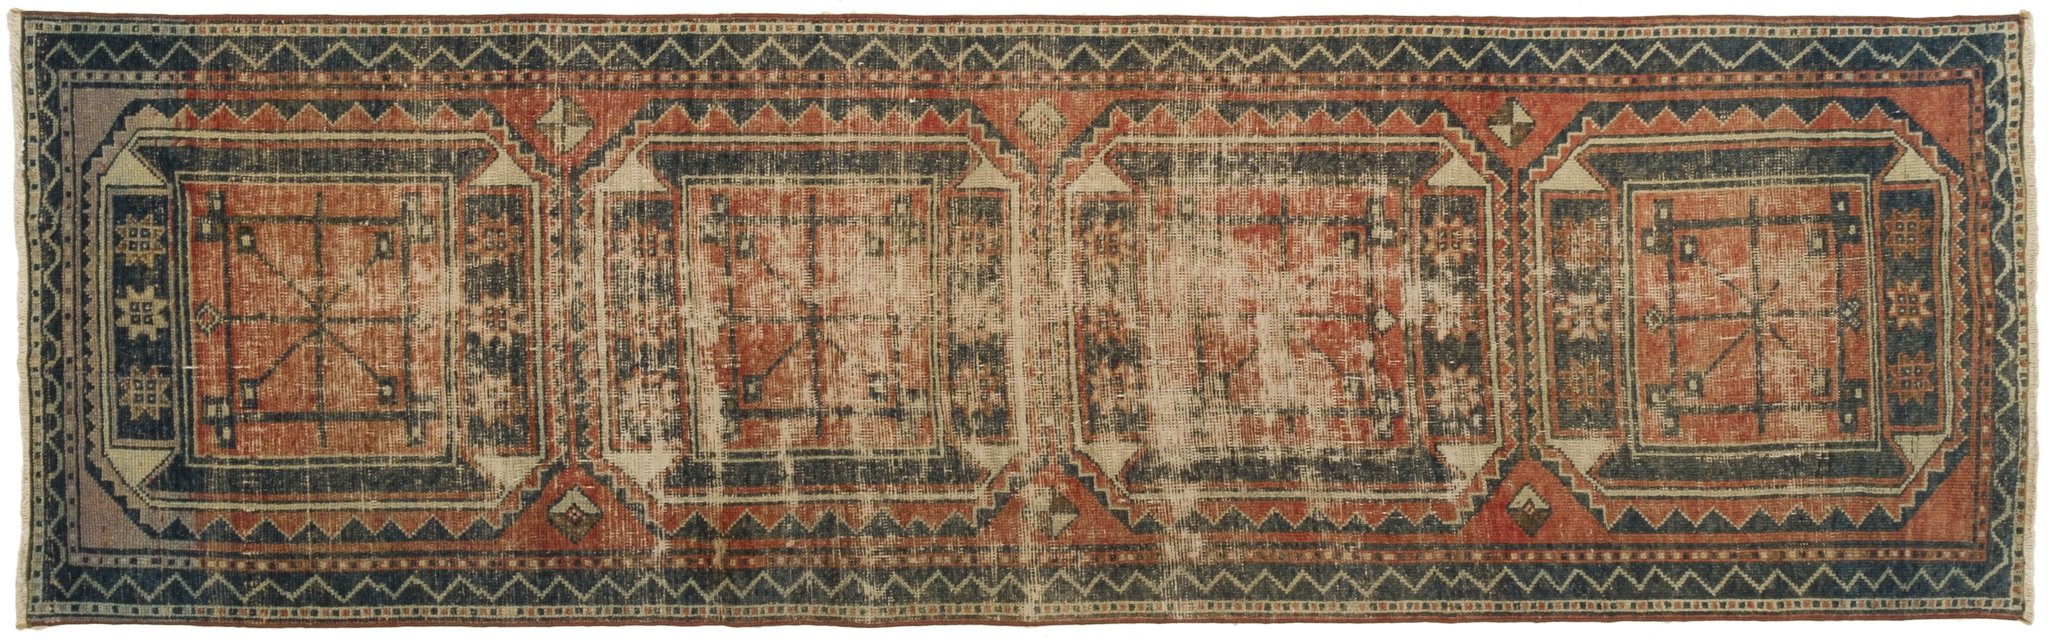 Vintage Turkish Runner Rug Indalecia